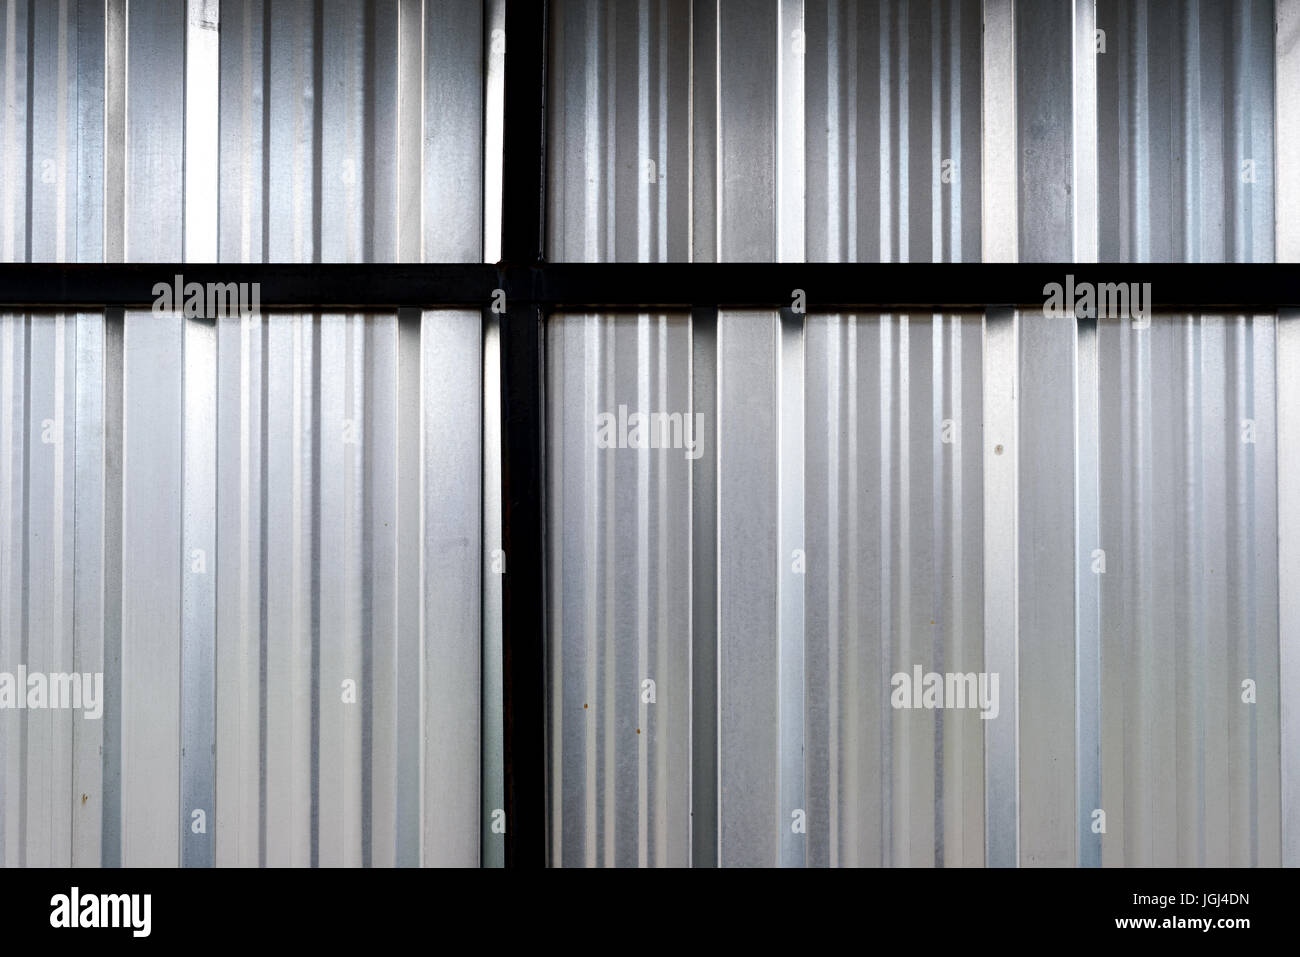 Horizontal and vertical stripes in aluminum sheet metal with reflected light - Stock Image